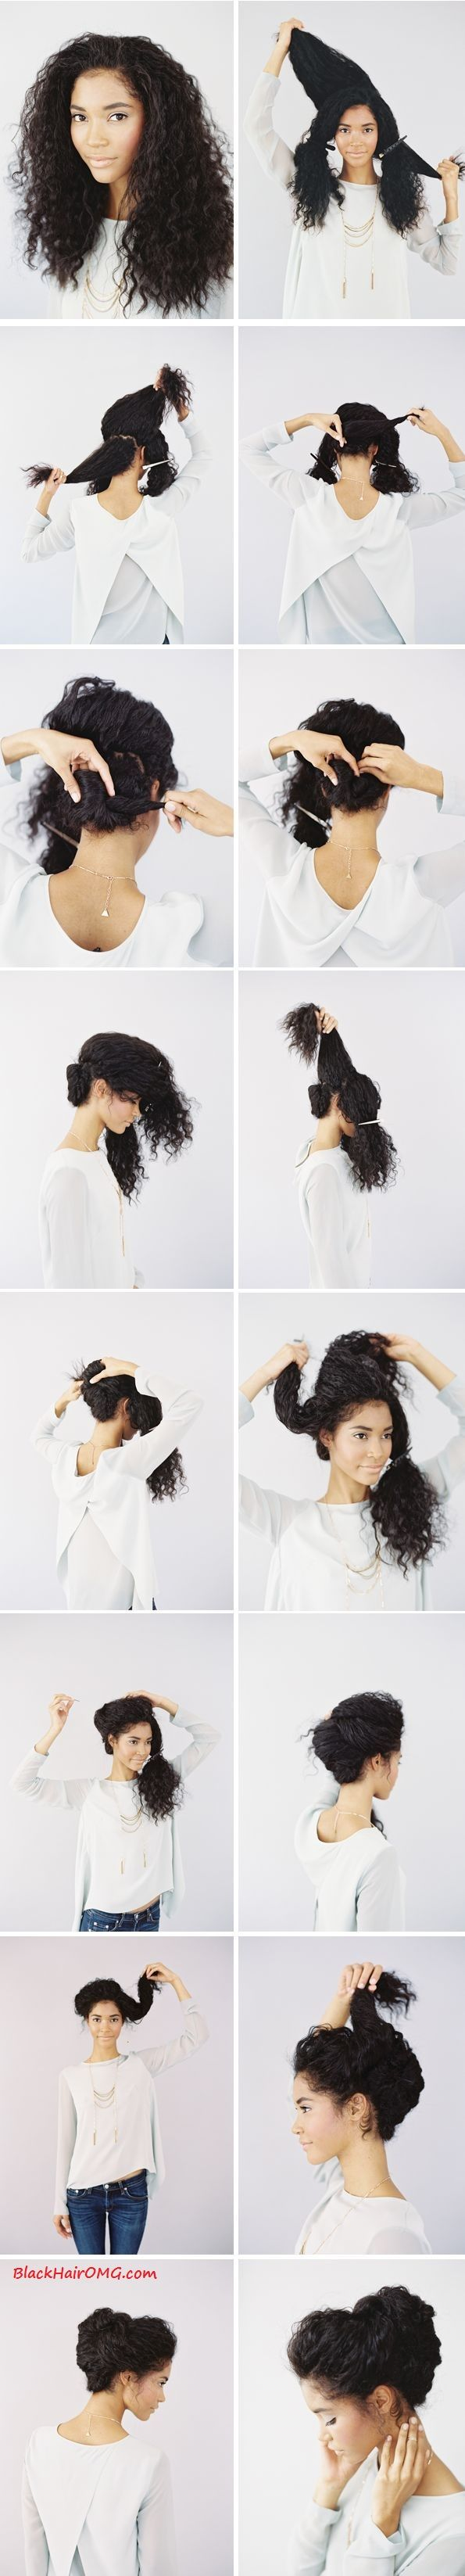 How to do an Updo for Naturally Curly Hair www.blackhairOMG.com